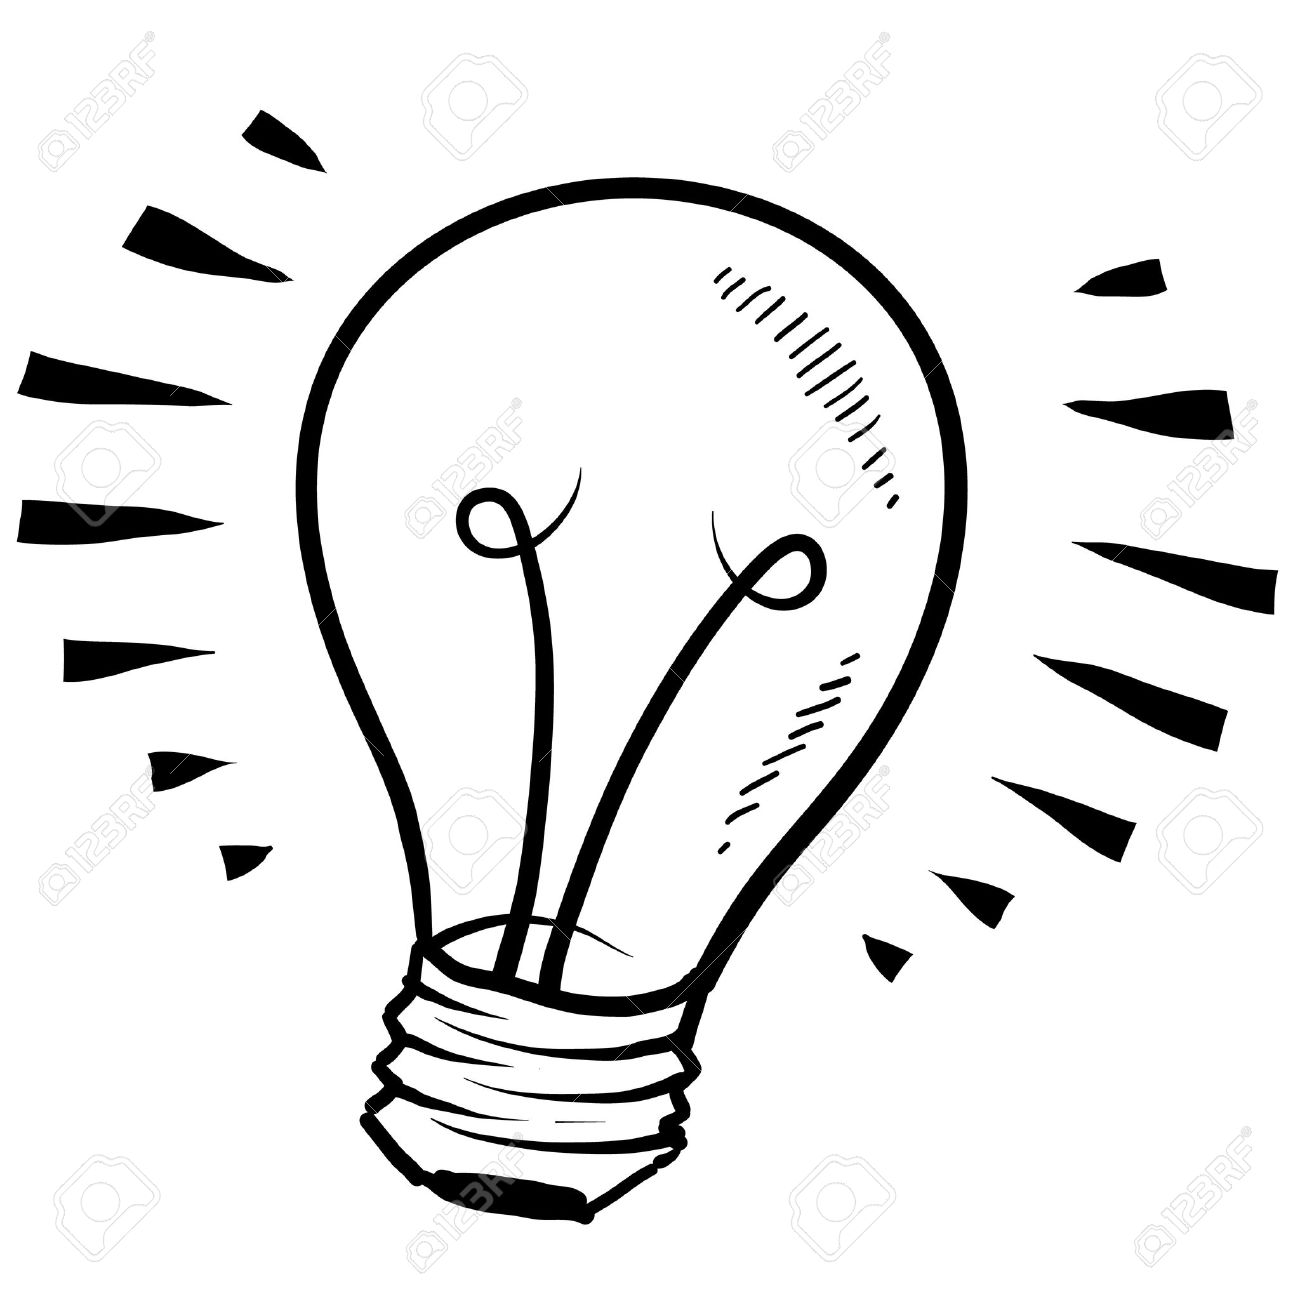 Doodle Style Light Bulb Or Idea Symbol Sketch In Vector Format Stock Photo